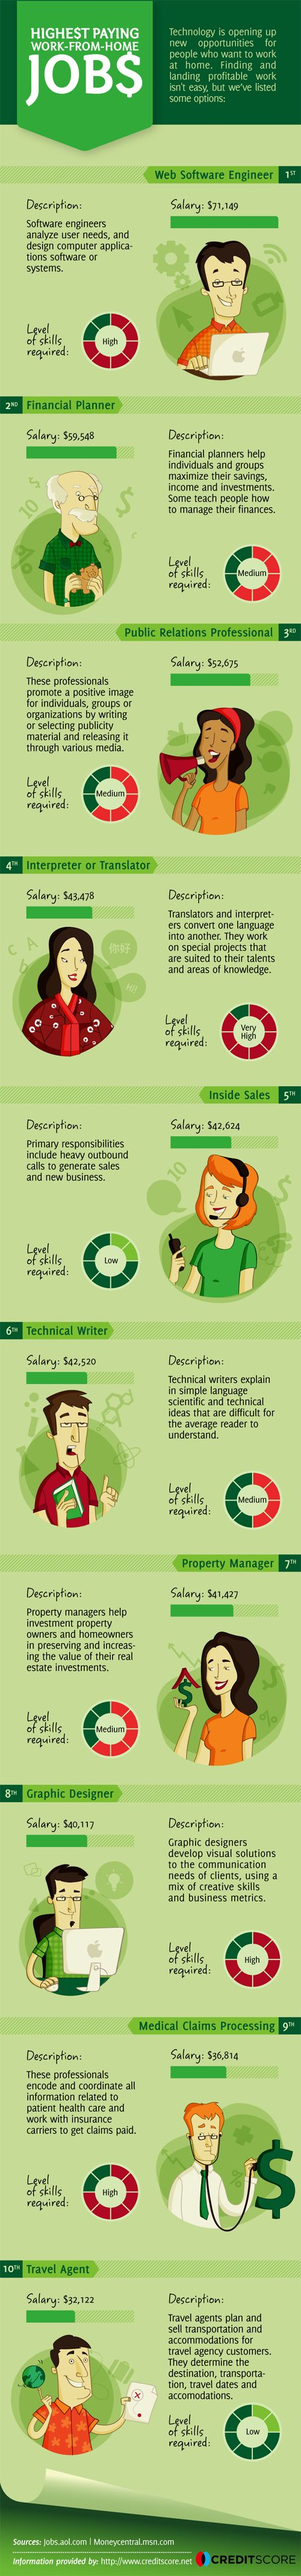 The Highest Paying Work From Home Jobs in the US #infographic